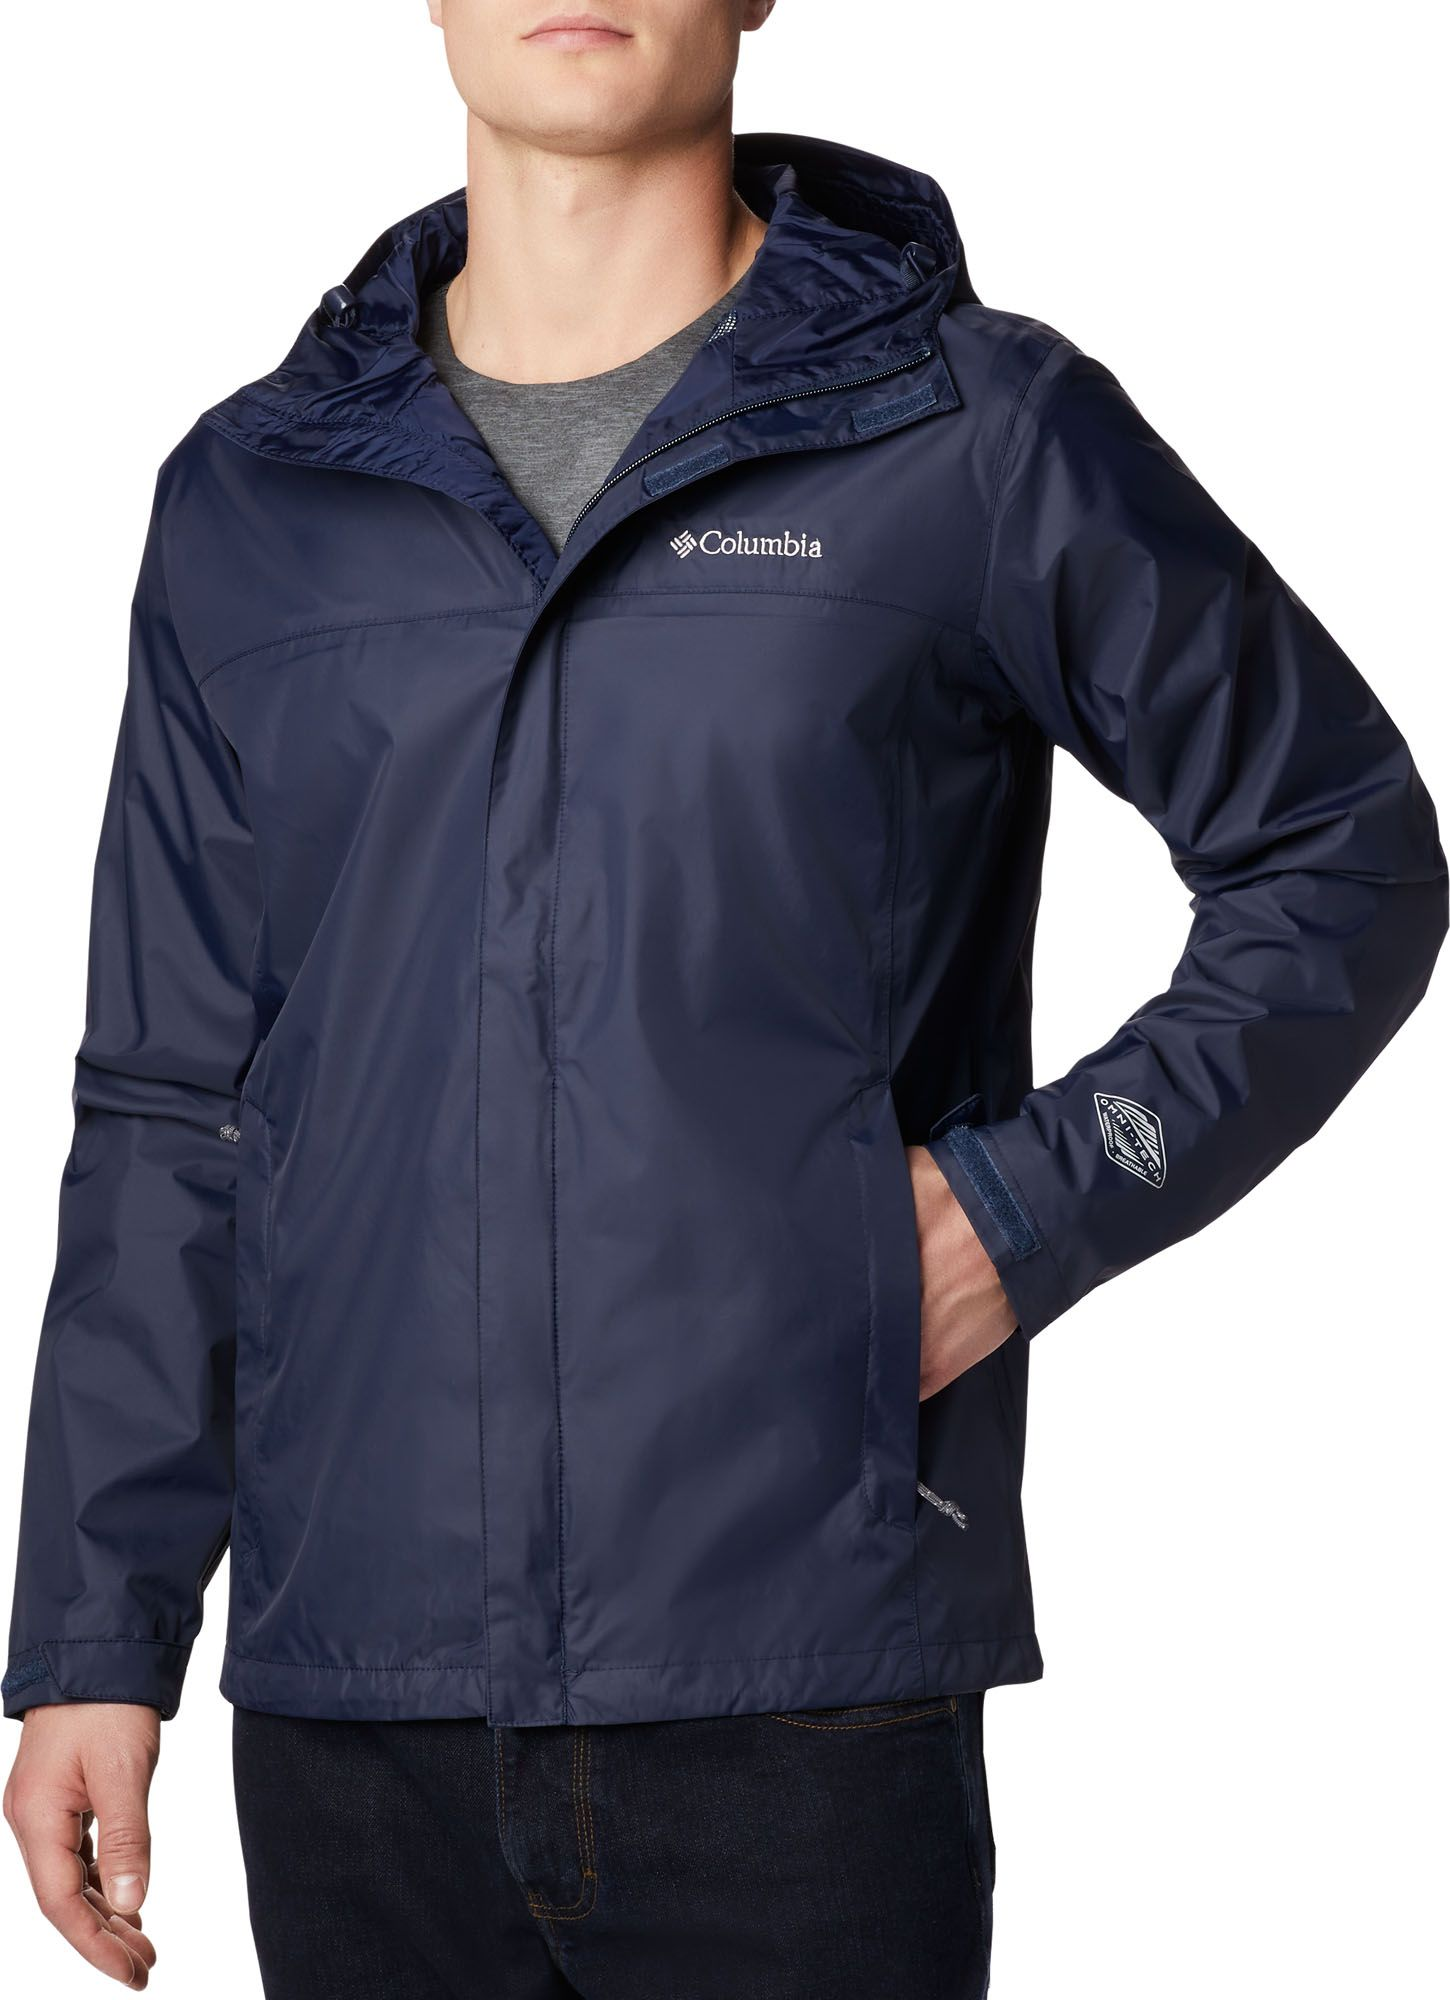 Columbia Men's Tall Watertight II Rain Jacket| DICK'S Sporting Goods